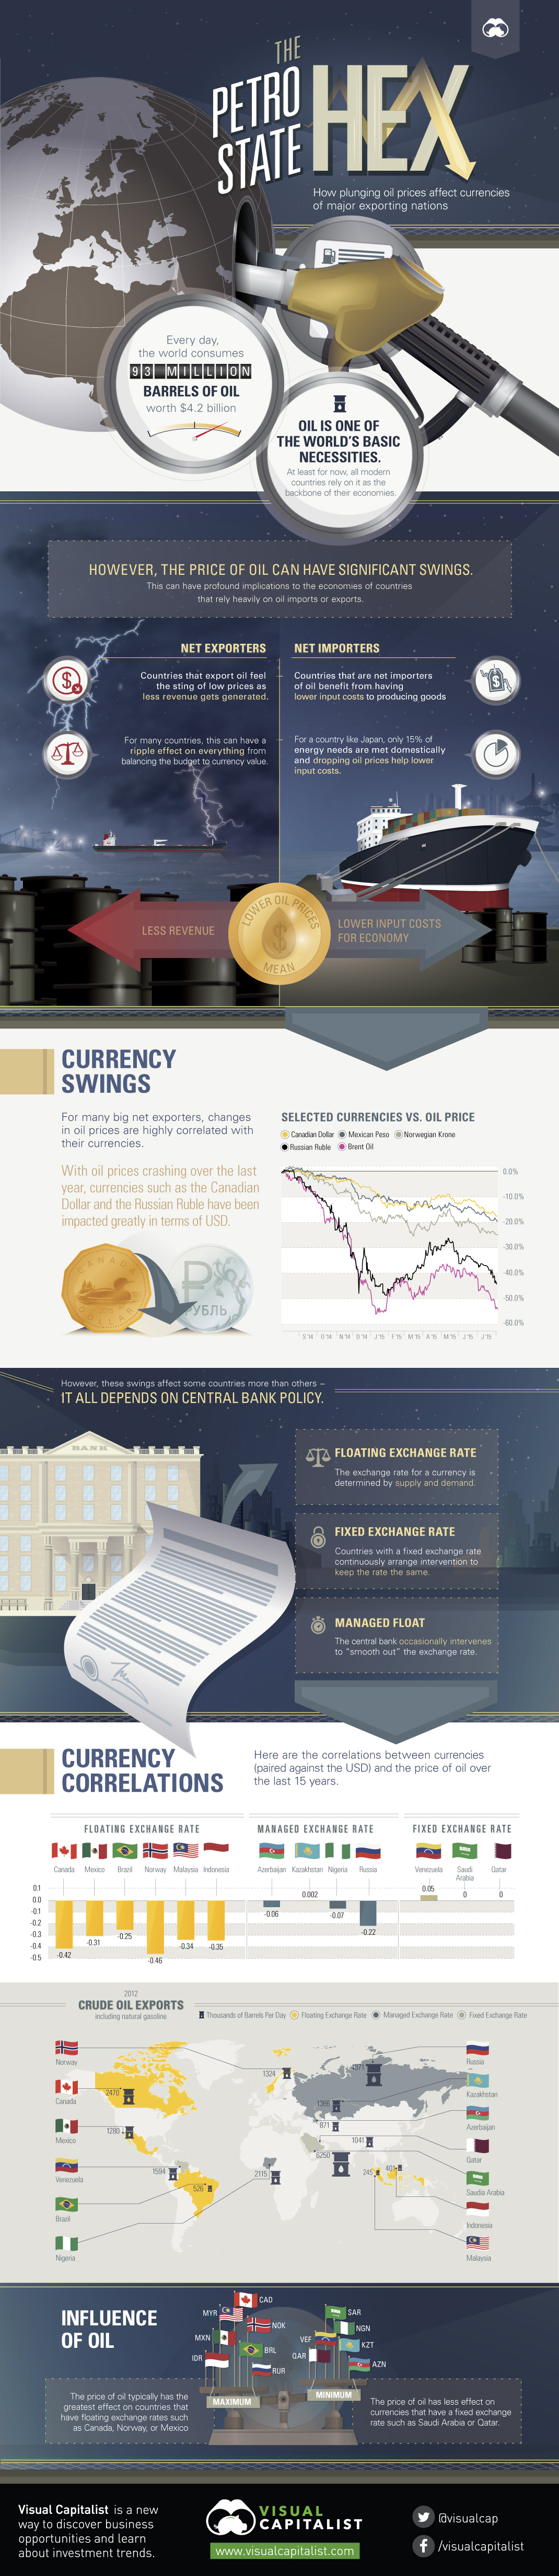 From http://www.visualcapitalist.com/the-petrostate-hex-how-plunging-oil-prices-affect-currencies/